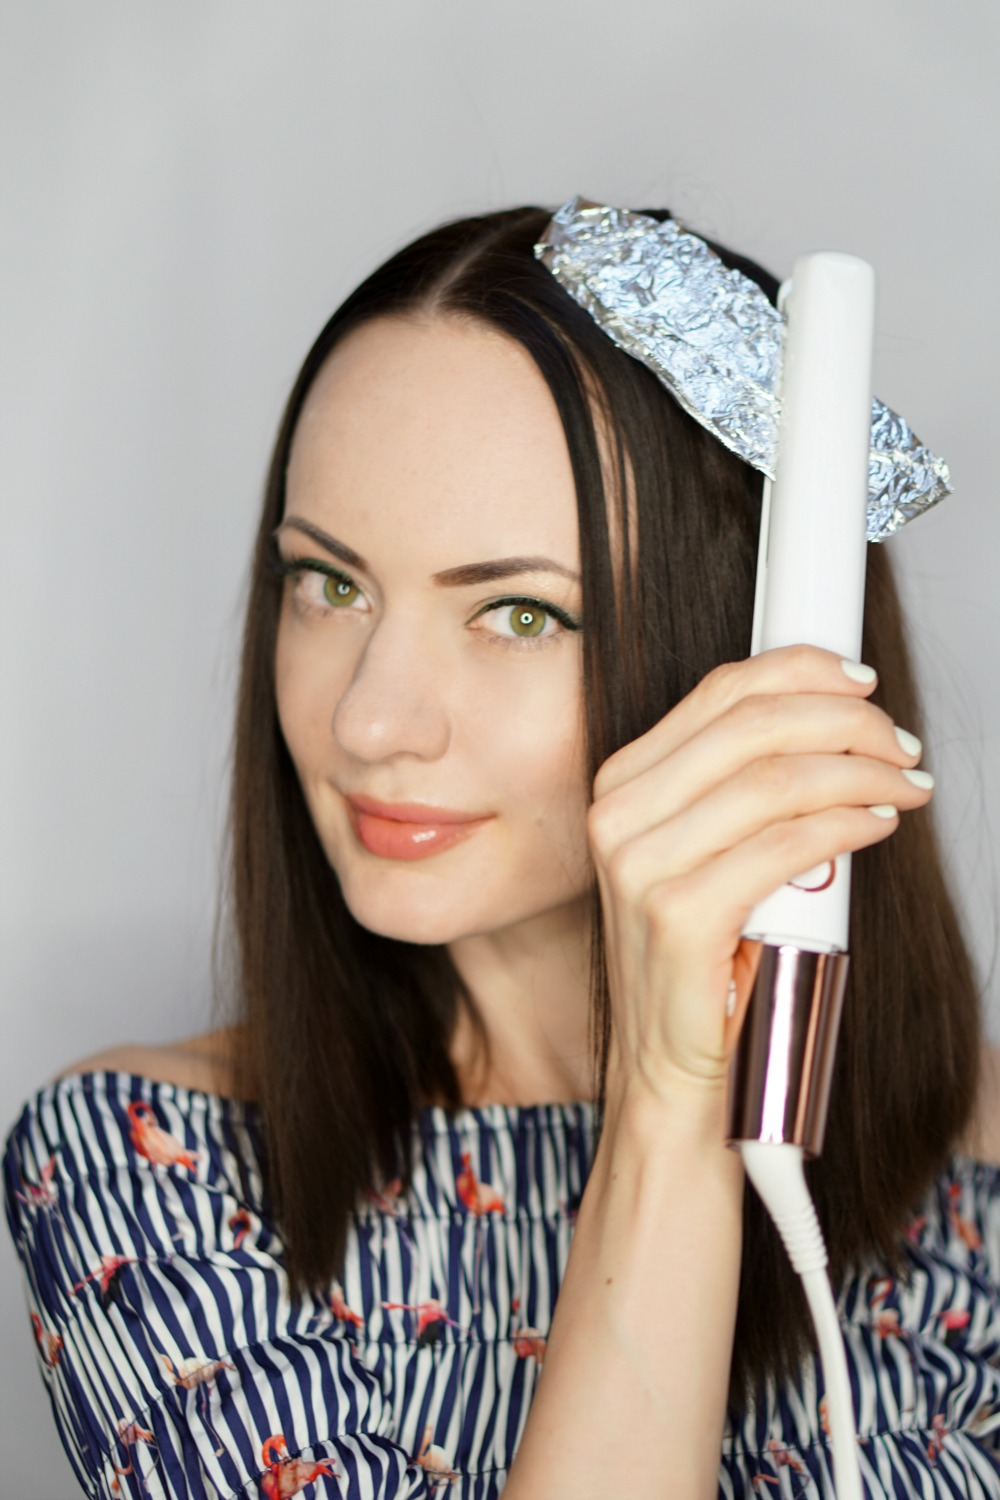 StyleSprinter - How To Curl Your Hair Using A Flat Iron And Aluminum Foil - 6